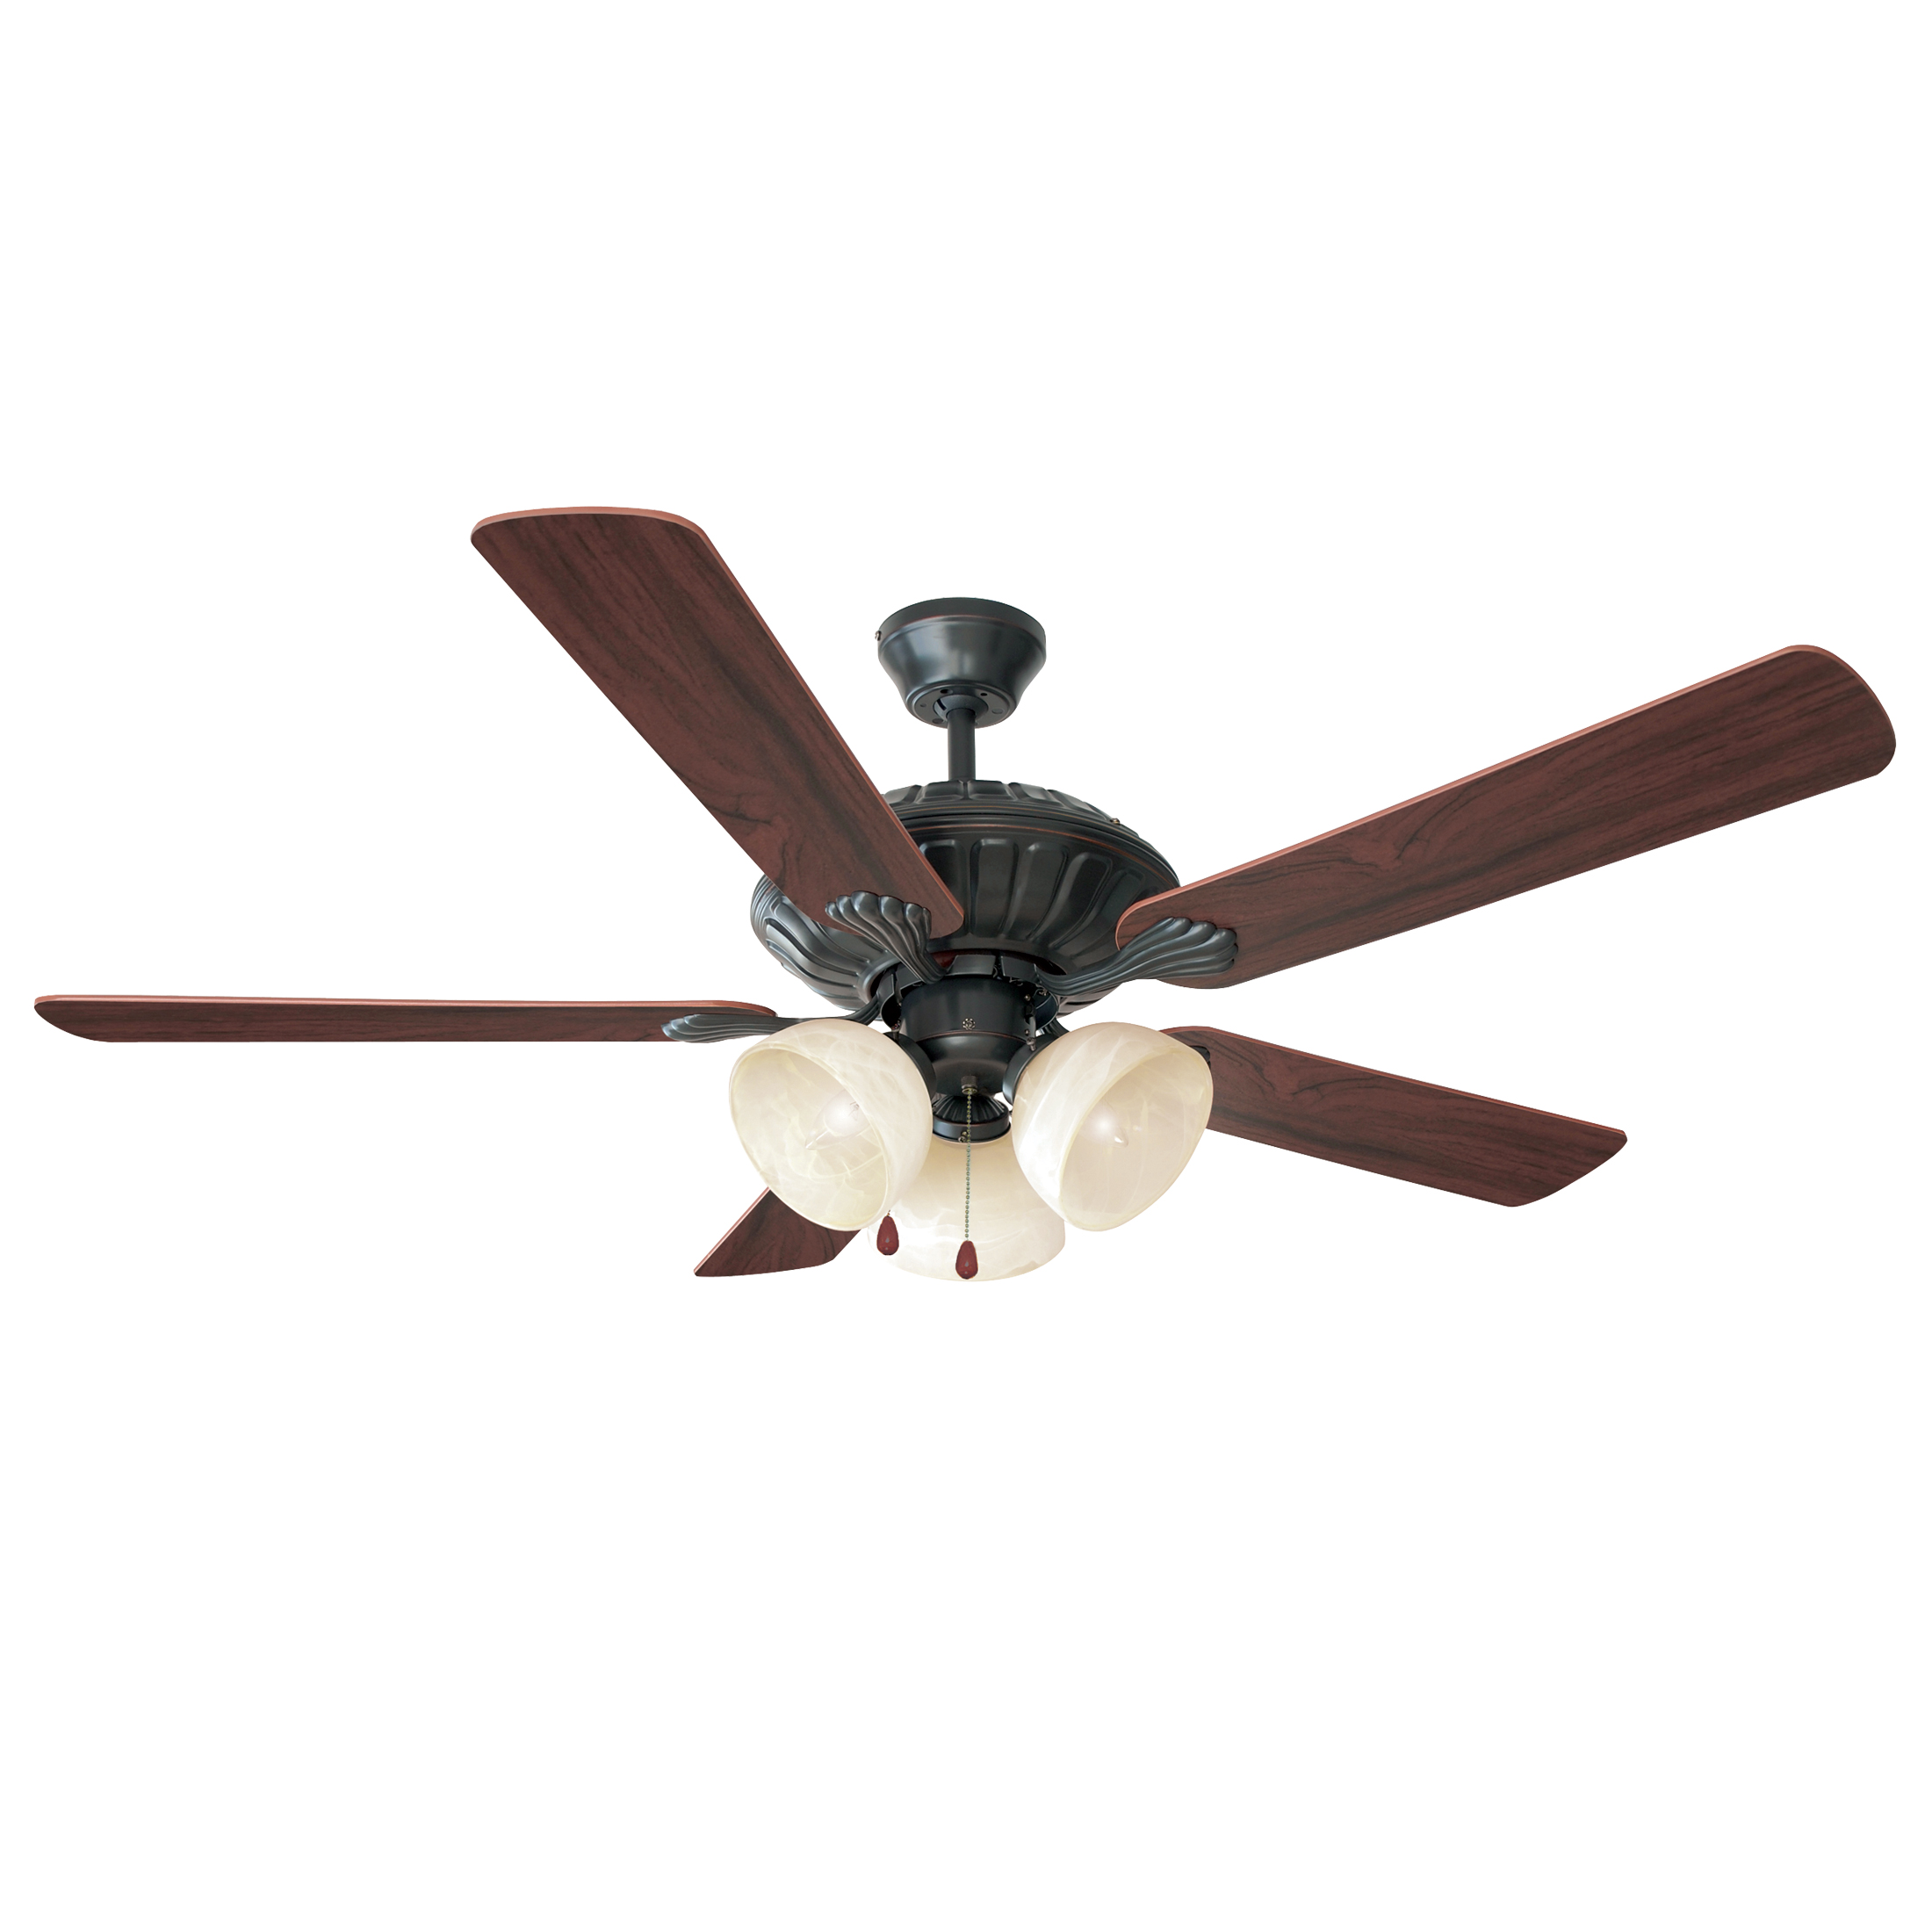 "Trevie 52"" Ceiling Fan 3 Light Ceiling Fans"